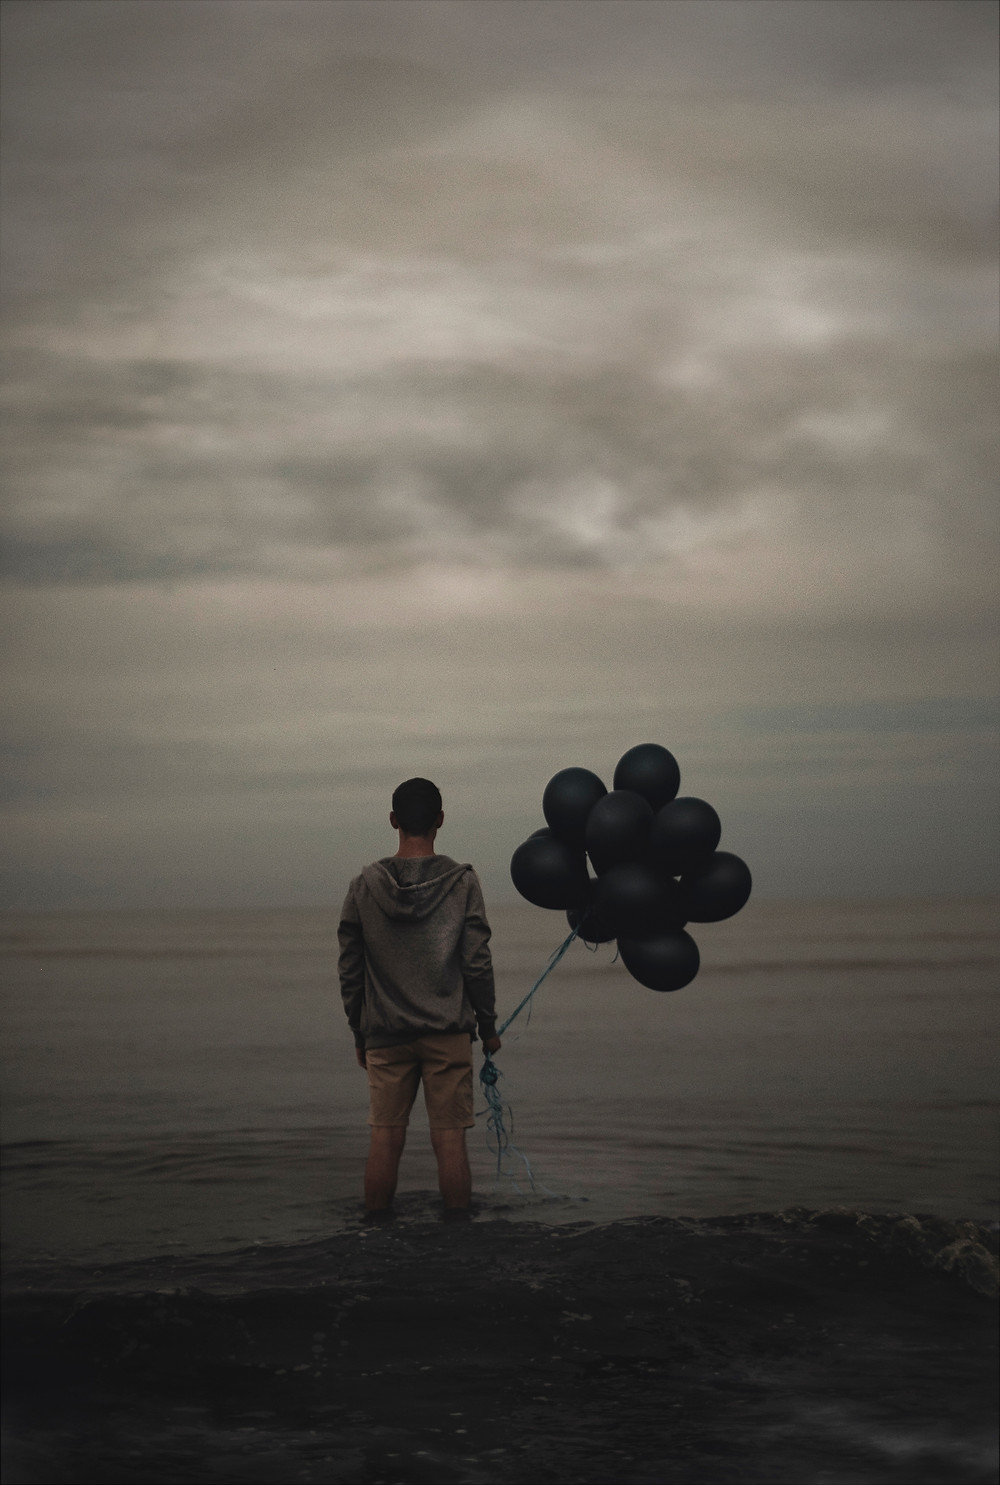 Photo of young man holding black balloons overlooking the ocean